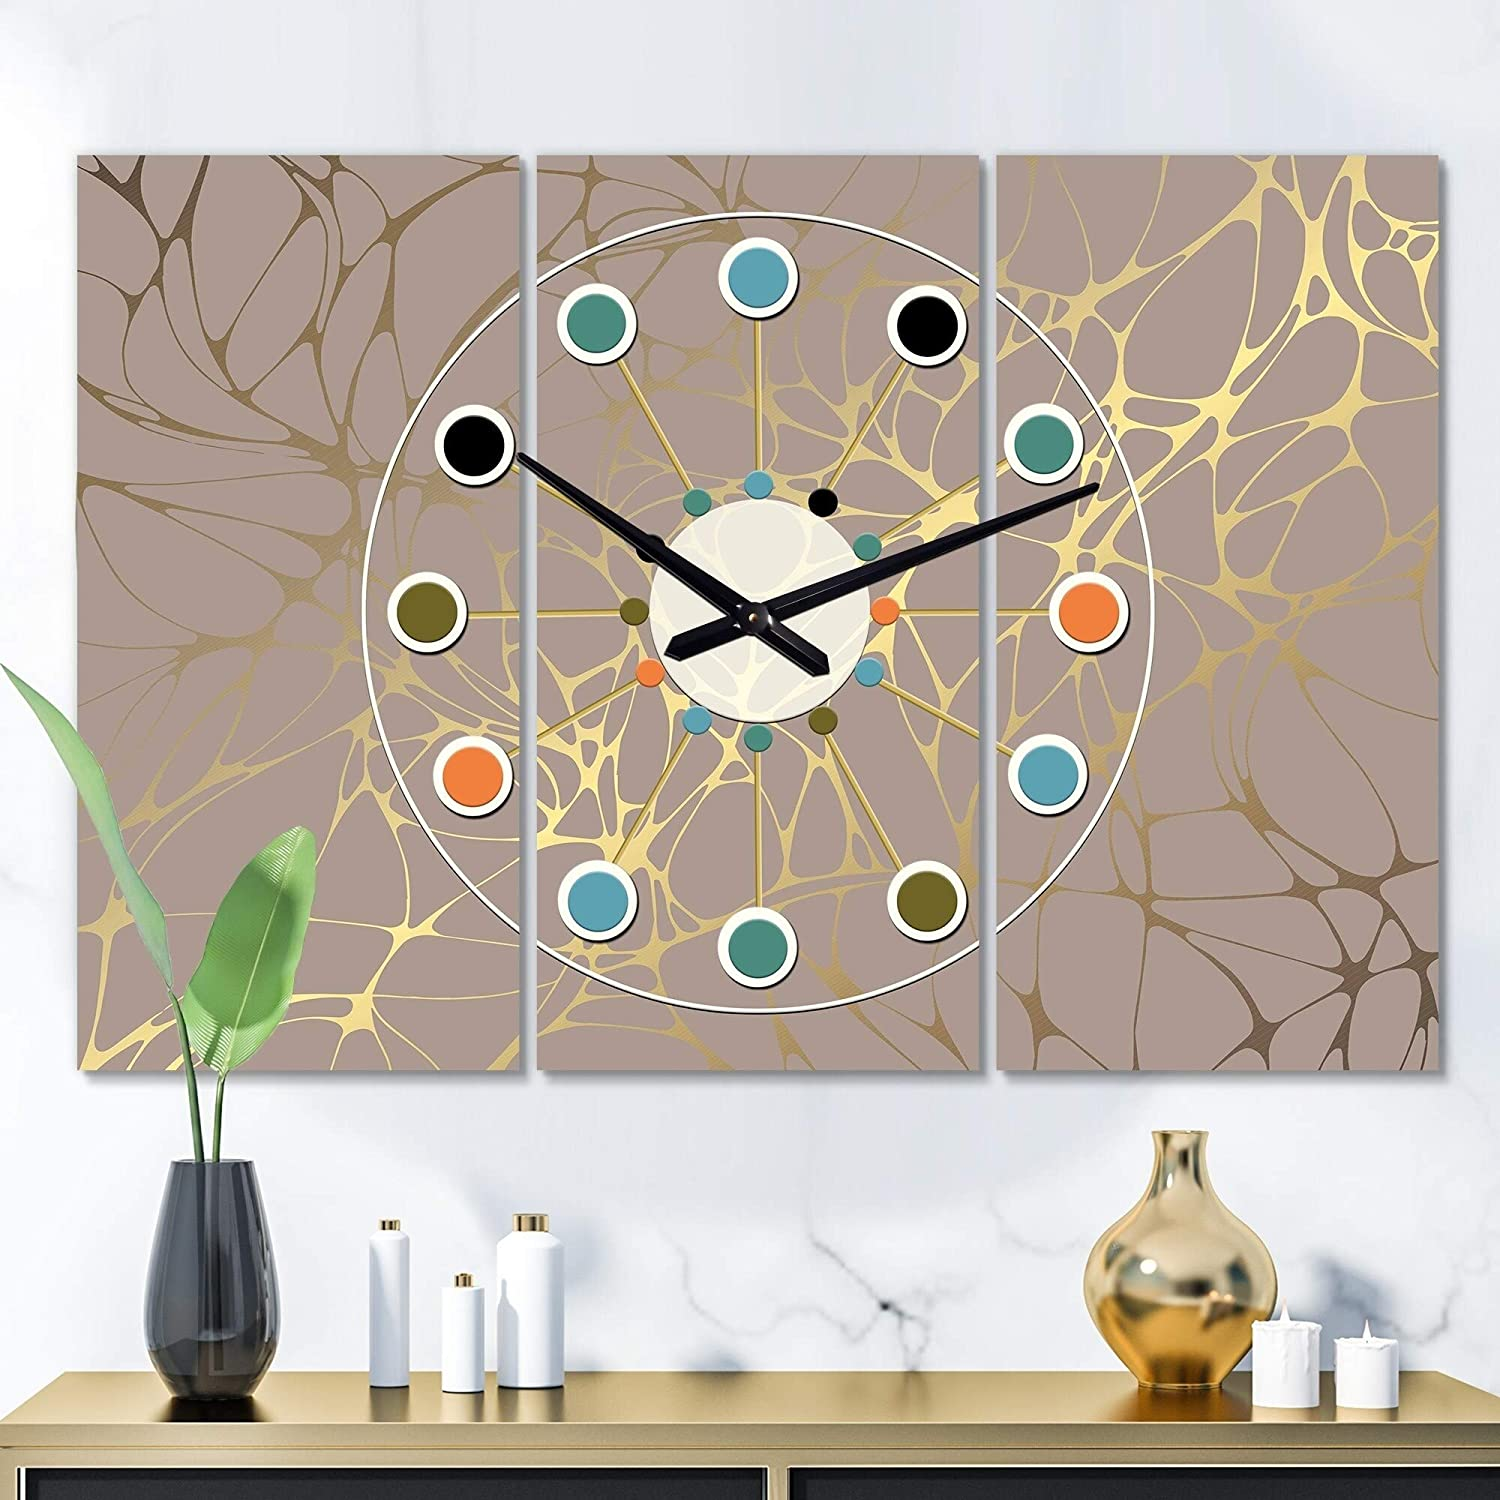 Amazon Com Golden Marble Design Ii Oversized Mid Century Wall Clock 3 Panels 36 In Wide X 28 High Gold Glam Modern Contemporary Aluminum Steel Finish Battery Included Home Kitchen